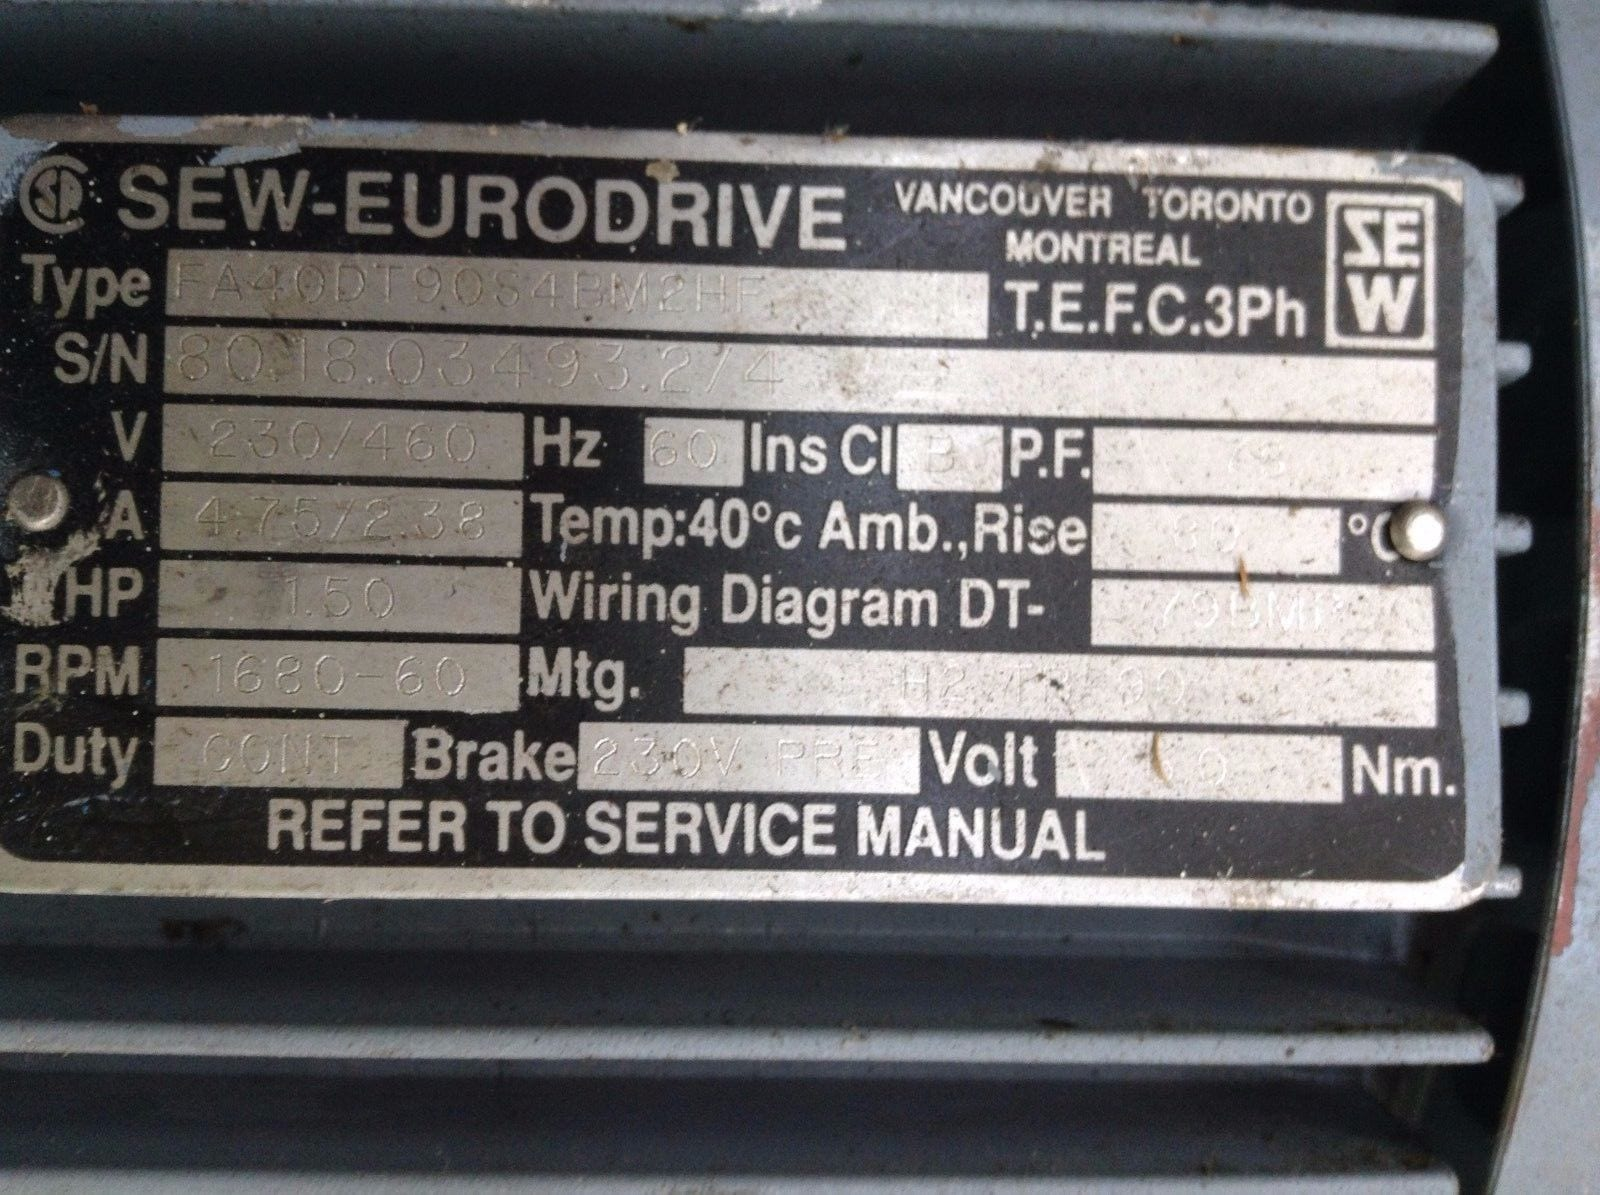 sew eurodrive wiring diagrams   29 wiring diagram images